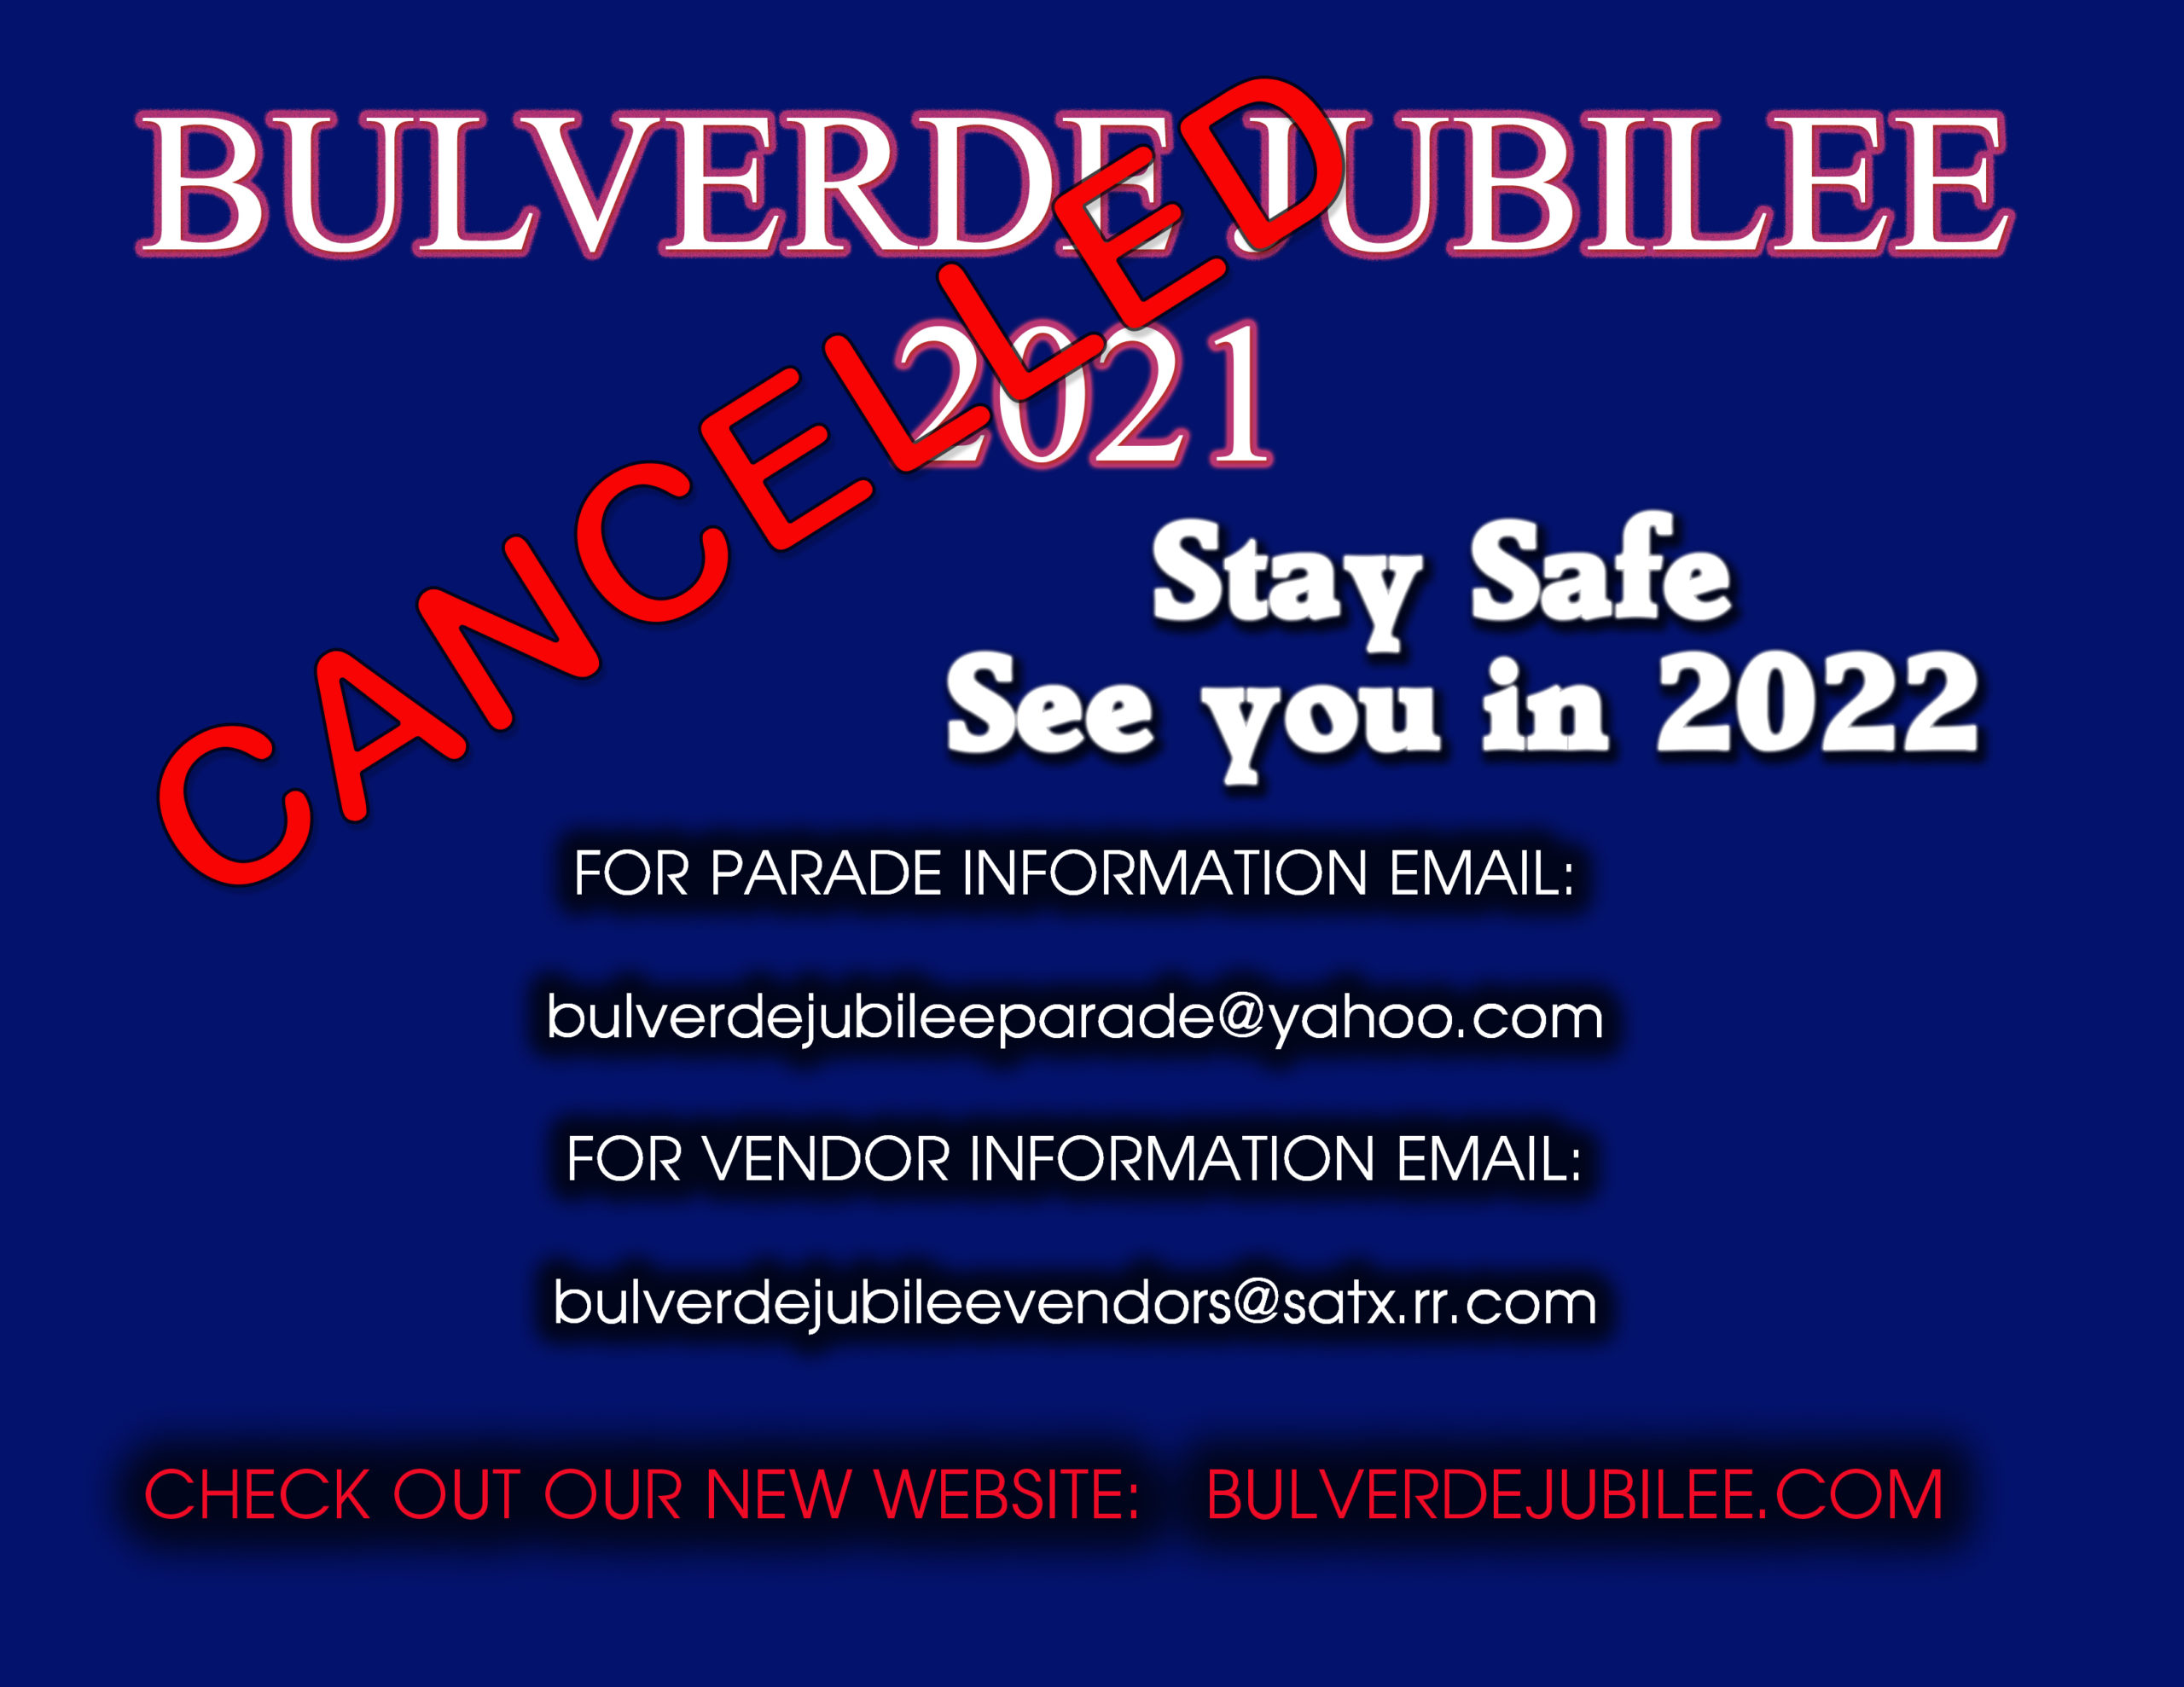 jubilee 2021 cancelled